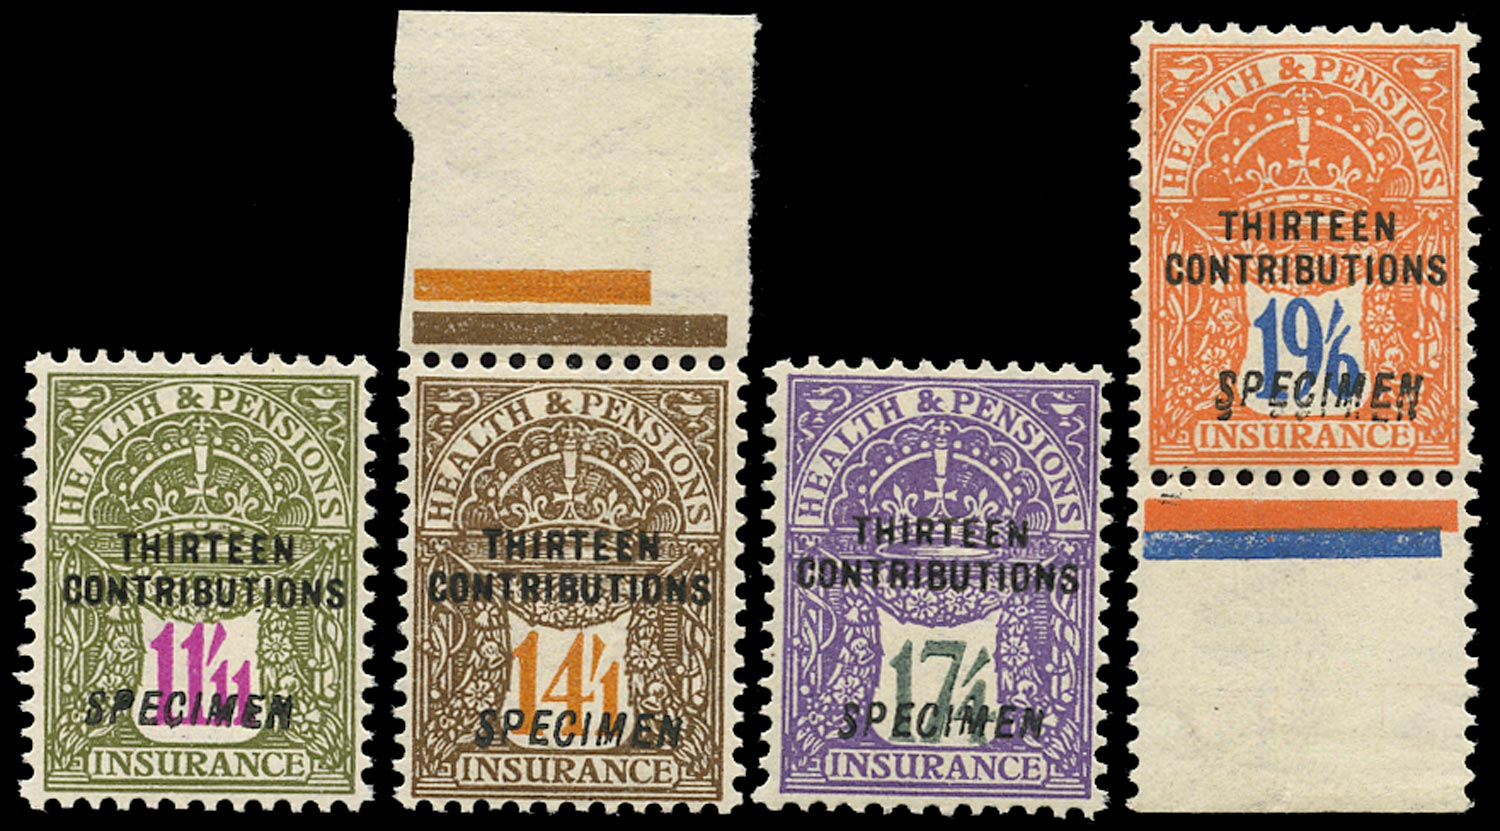 GB 1926 Revenue Health and pensions 13 Contributions